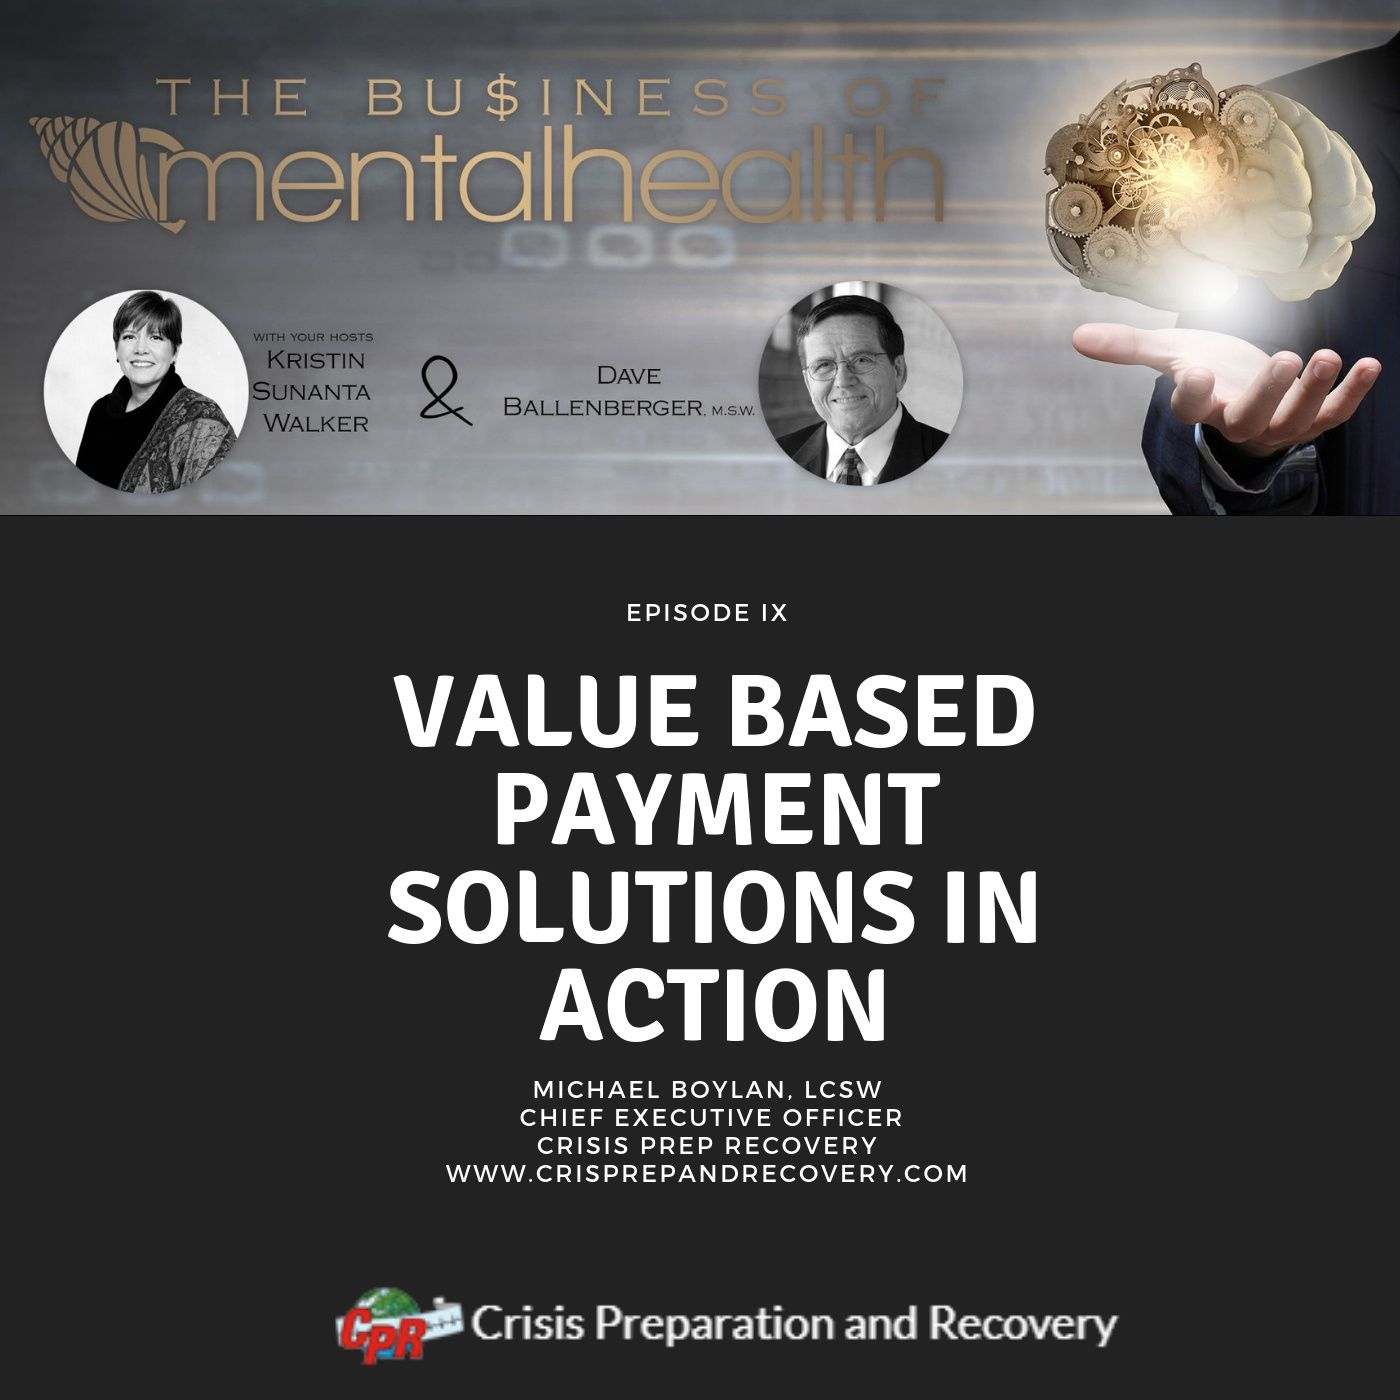 Mental Health News Radio - Mental Health Business: Value Based Payment Solutions In Action